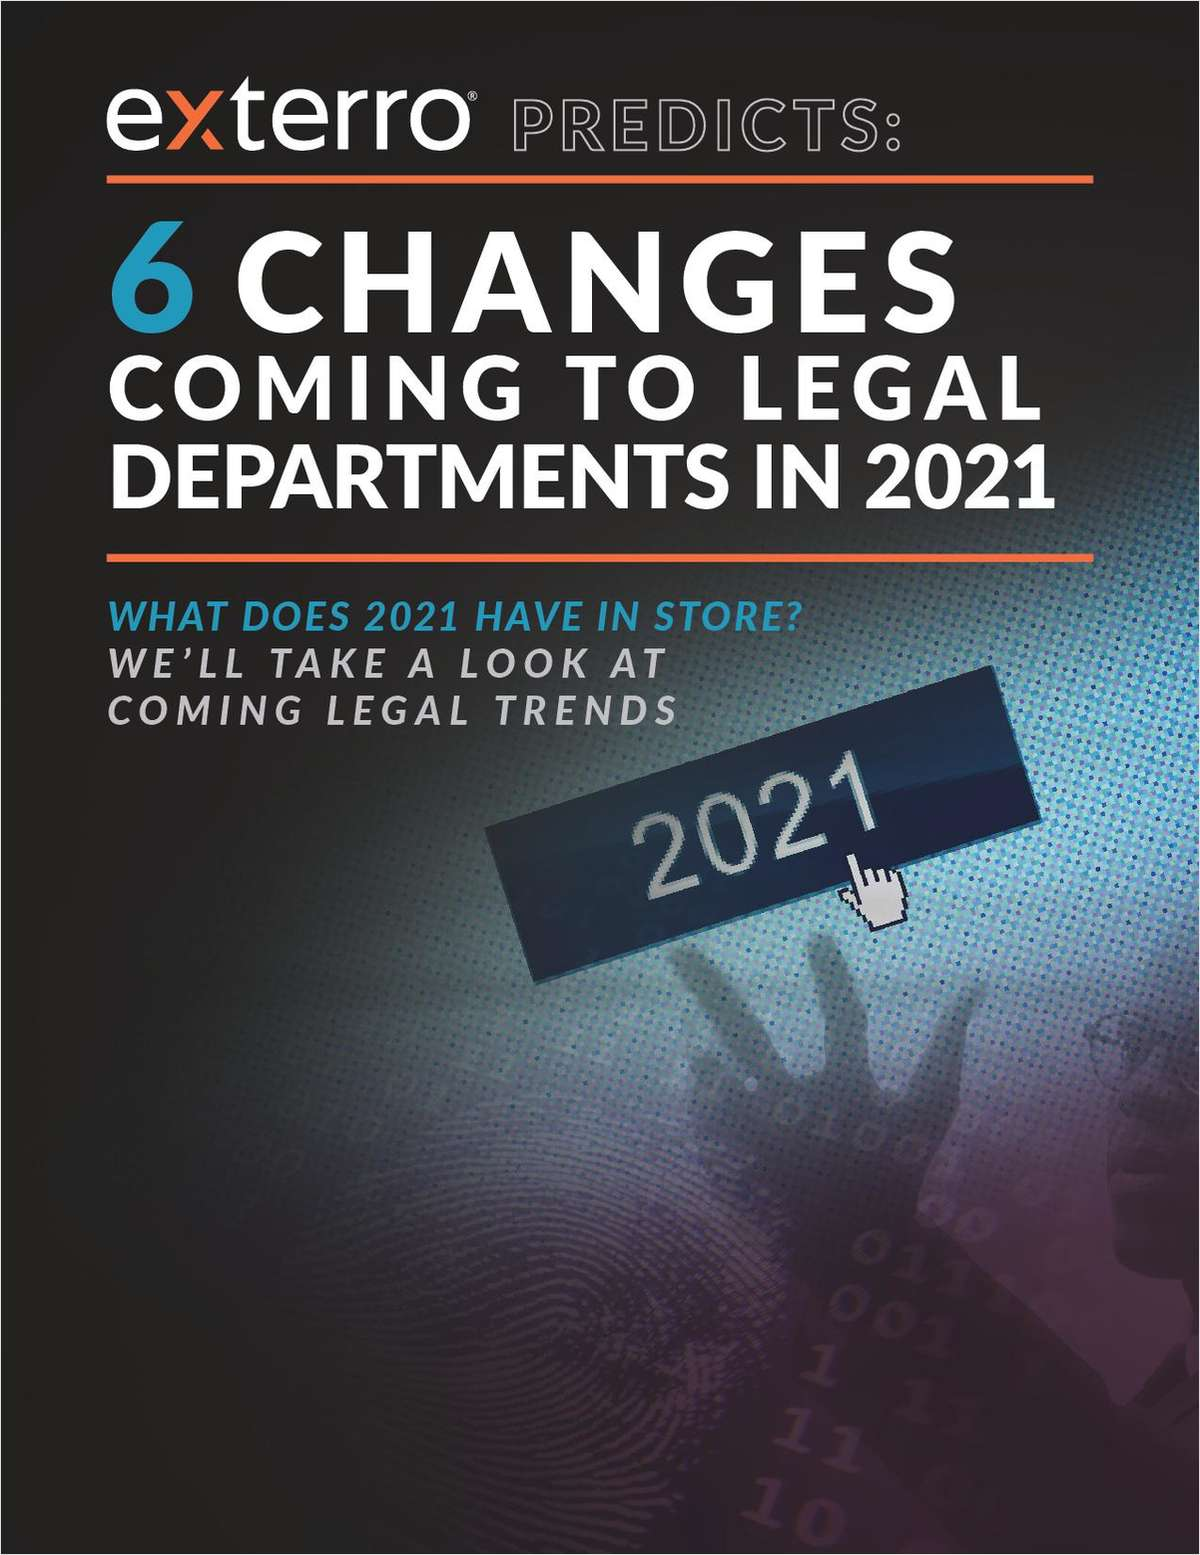 6 Changes Coming to Legal Departments in 2021